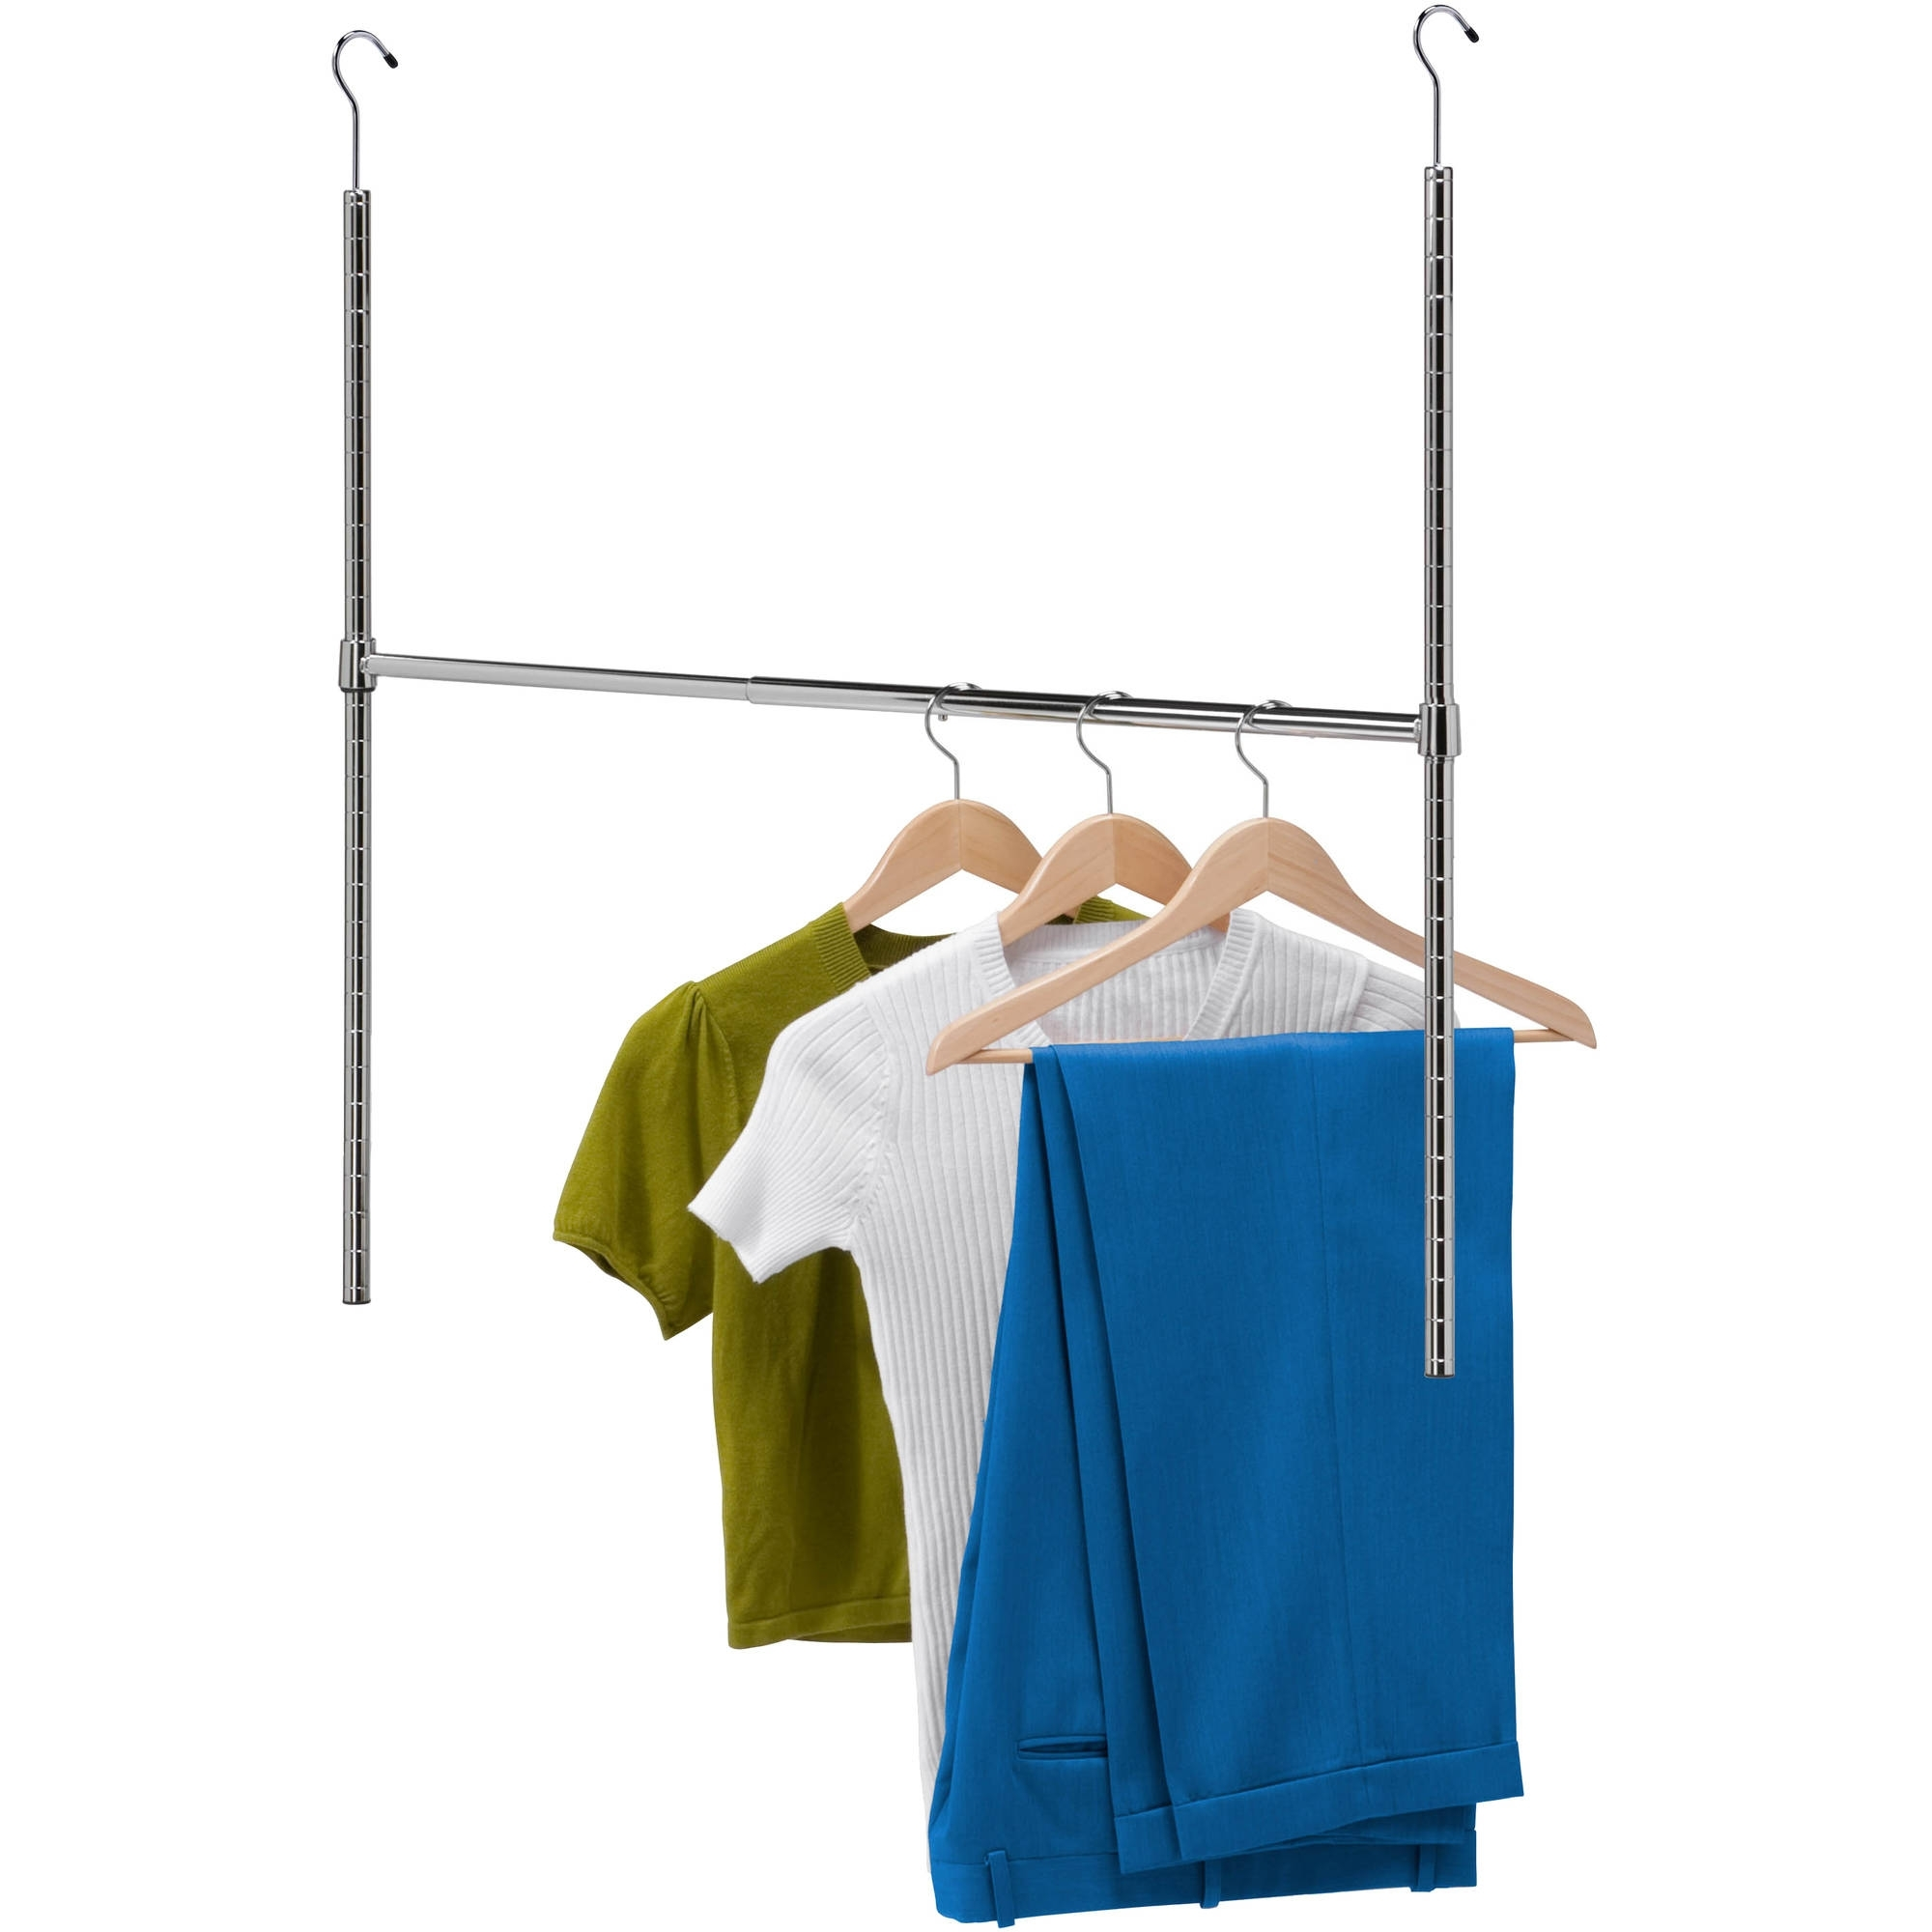 how with on shelf wardrobe r and hang hanger inspirations great rod an design oval your brackets wall clothes holder to hanging parts rods closet for angled a bar